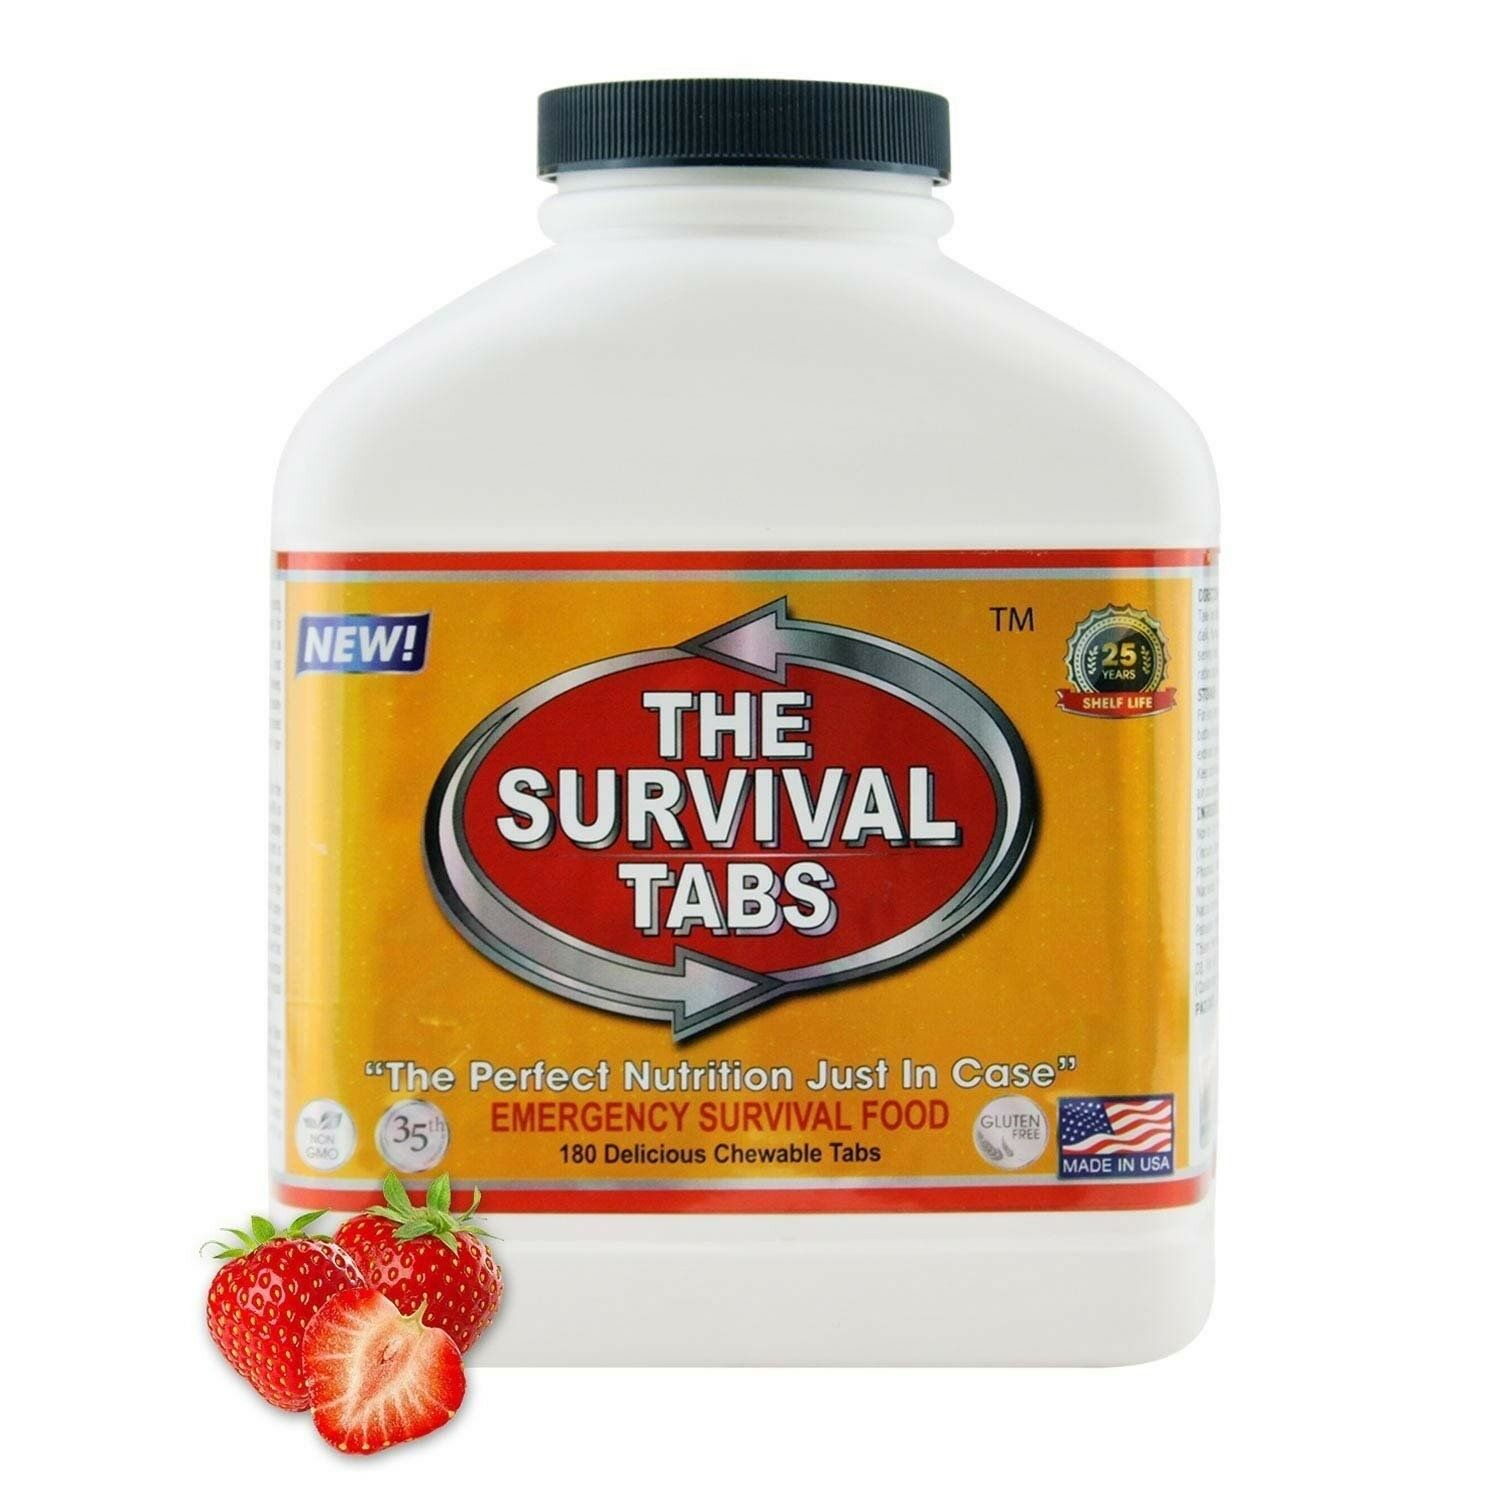 EmergencyHurricane  MRE Bugout Food survival tabs 180 15 day Strawberry Flavor  buy discounts